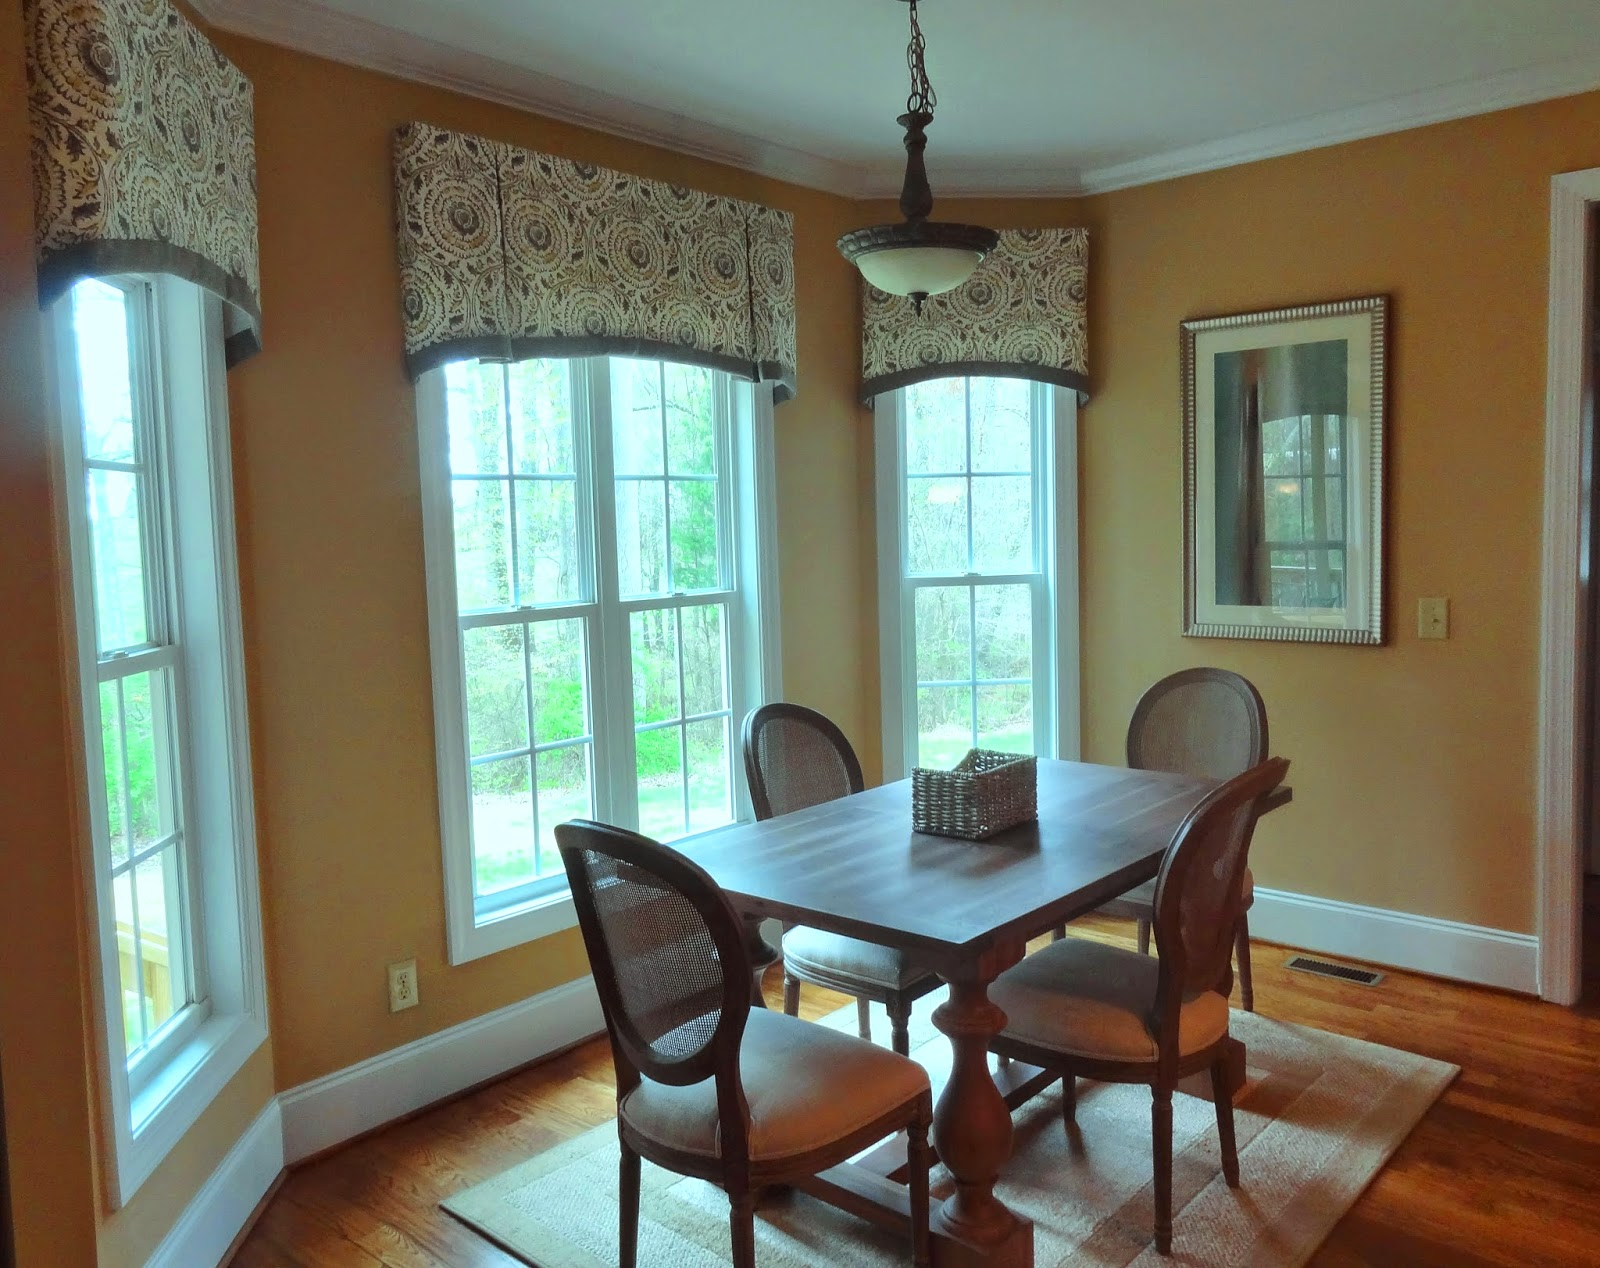 Can I add transom windows? Is a straight transom or arched transom ...